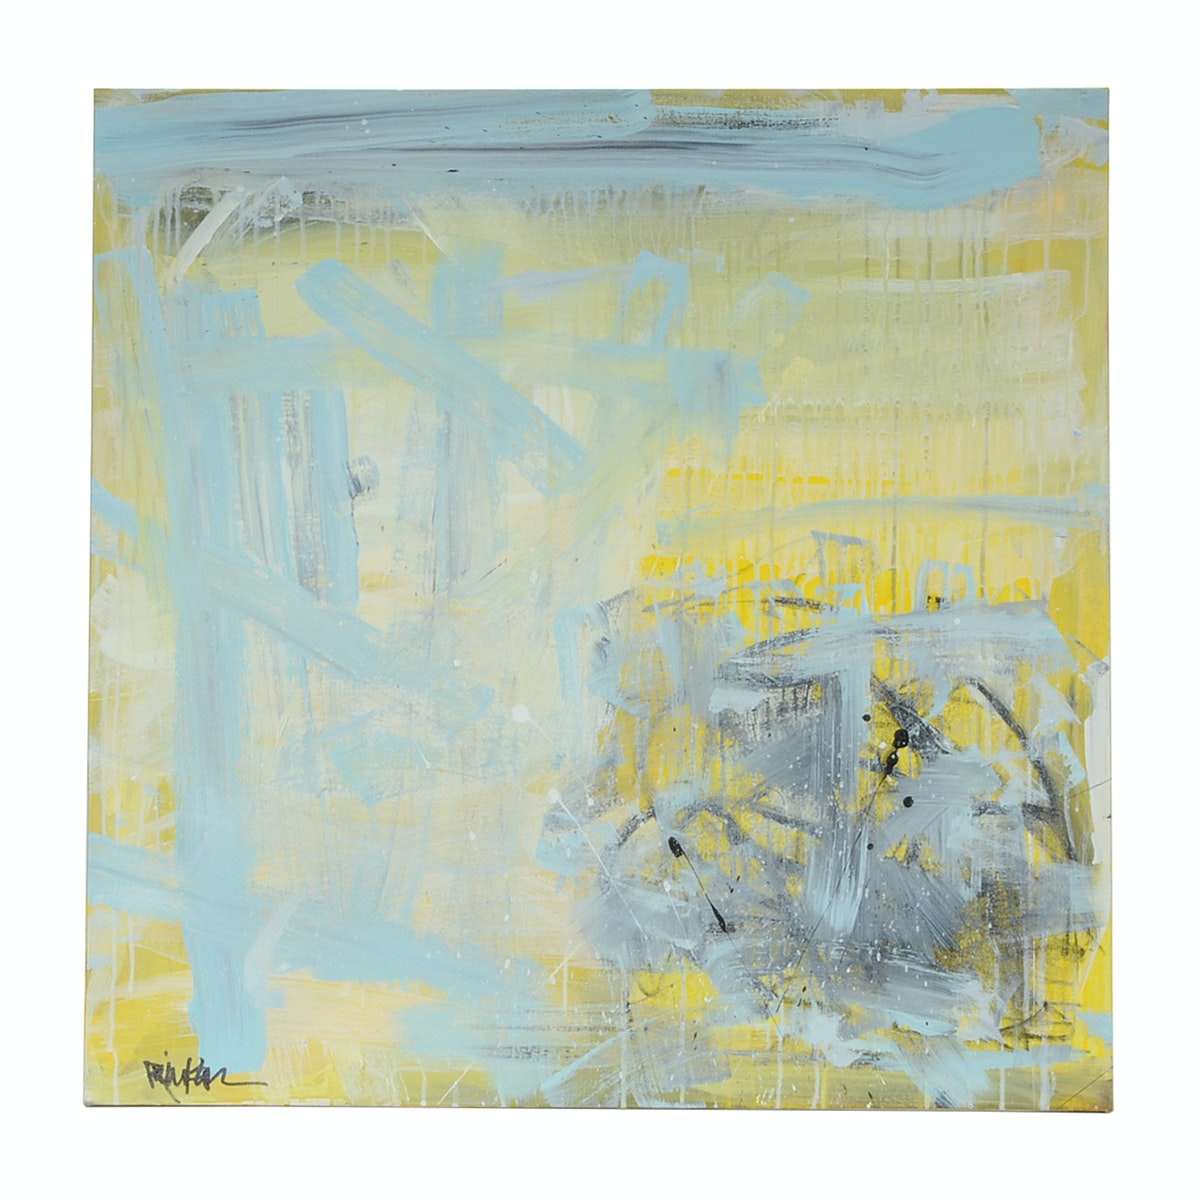 """Robbie Kemper Original Acrylic Painting """"Washed Blue Yellow Grays"""